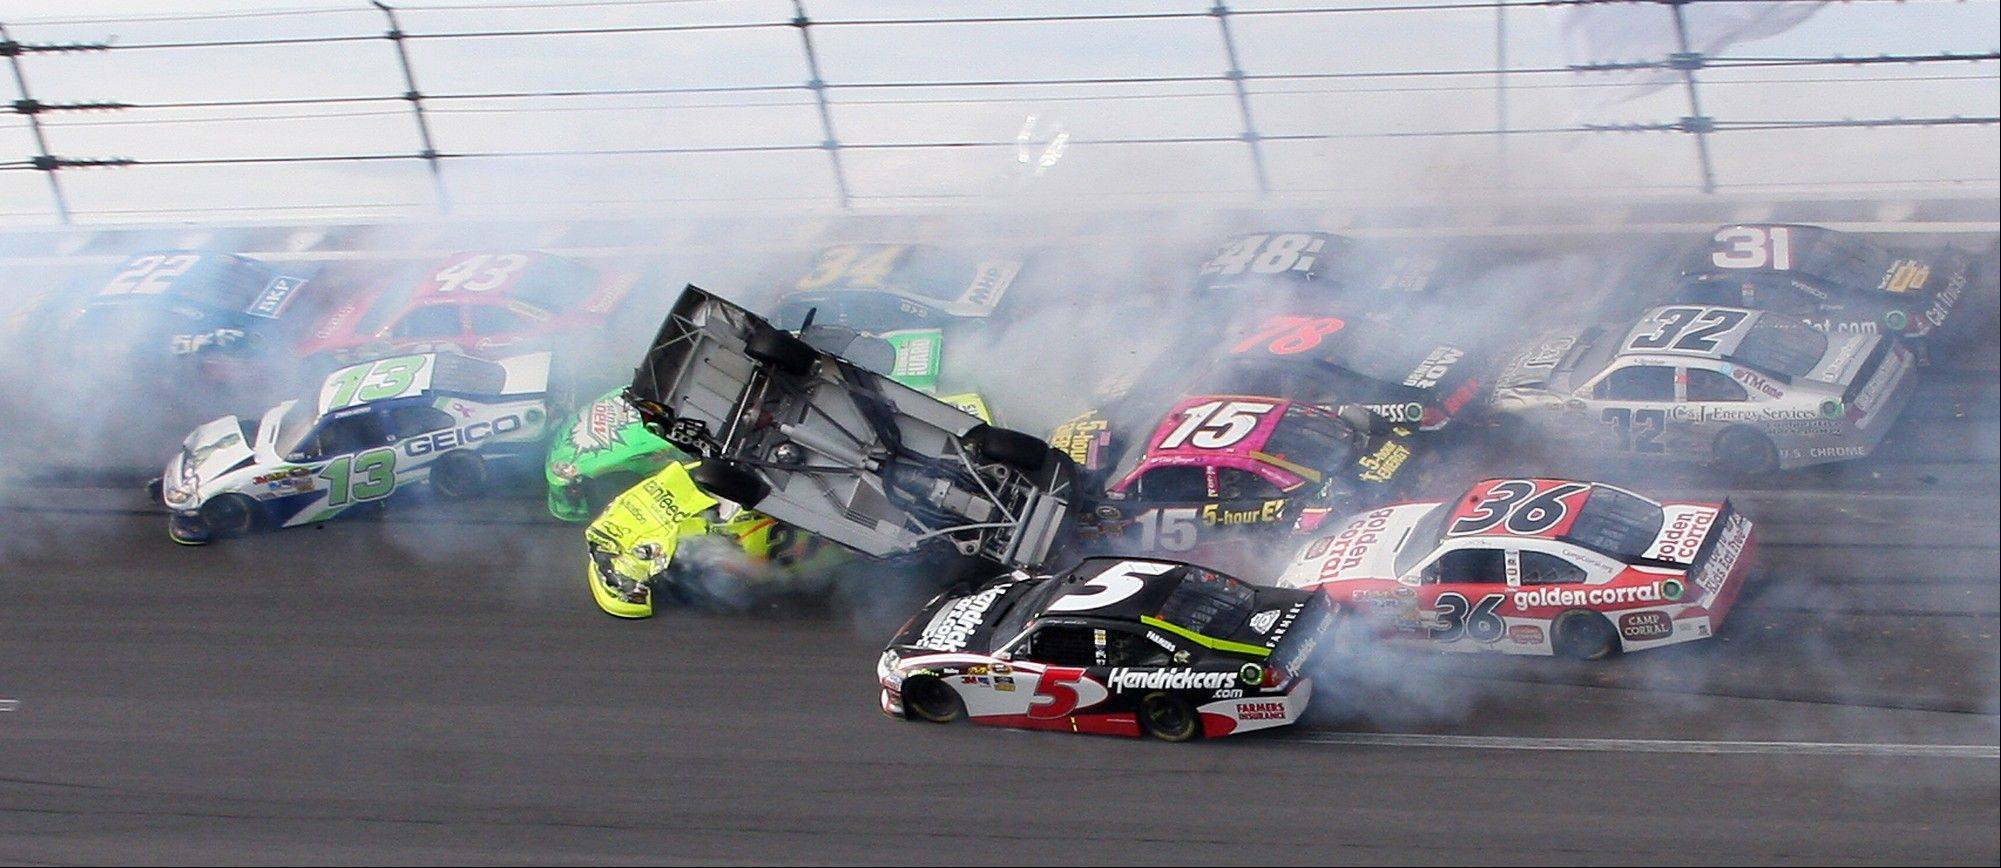 Tony Stewart (14) flips over as Kasey Kahne (5), Clint Bowyer (15), Dave Blaney (36), Terry Labonte (32), Regan Smith (78), Jeff Burton (31), Jimmie Johnson (48) crash around him during the NASCAR Sprint Cup race Sunday in Talladega, Ala. Also involved in the wreck were Paul Menard (27), Casey Mears (13), Aric Almirola (43), Dale Earnhardt Jr. (88), David Ragan (34) and Sam Hornish Jr. (22).